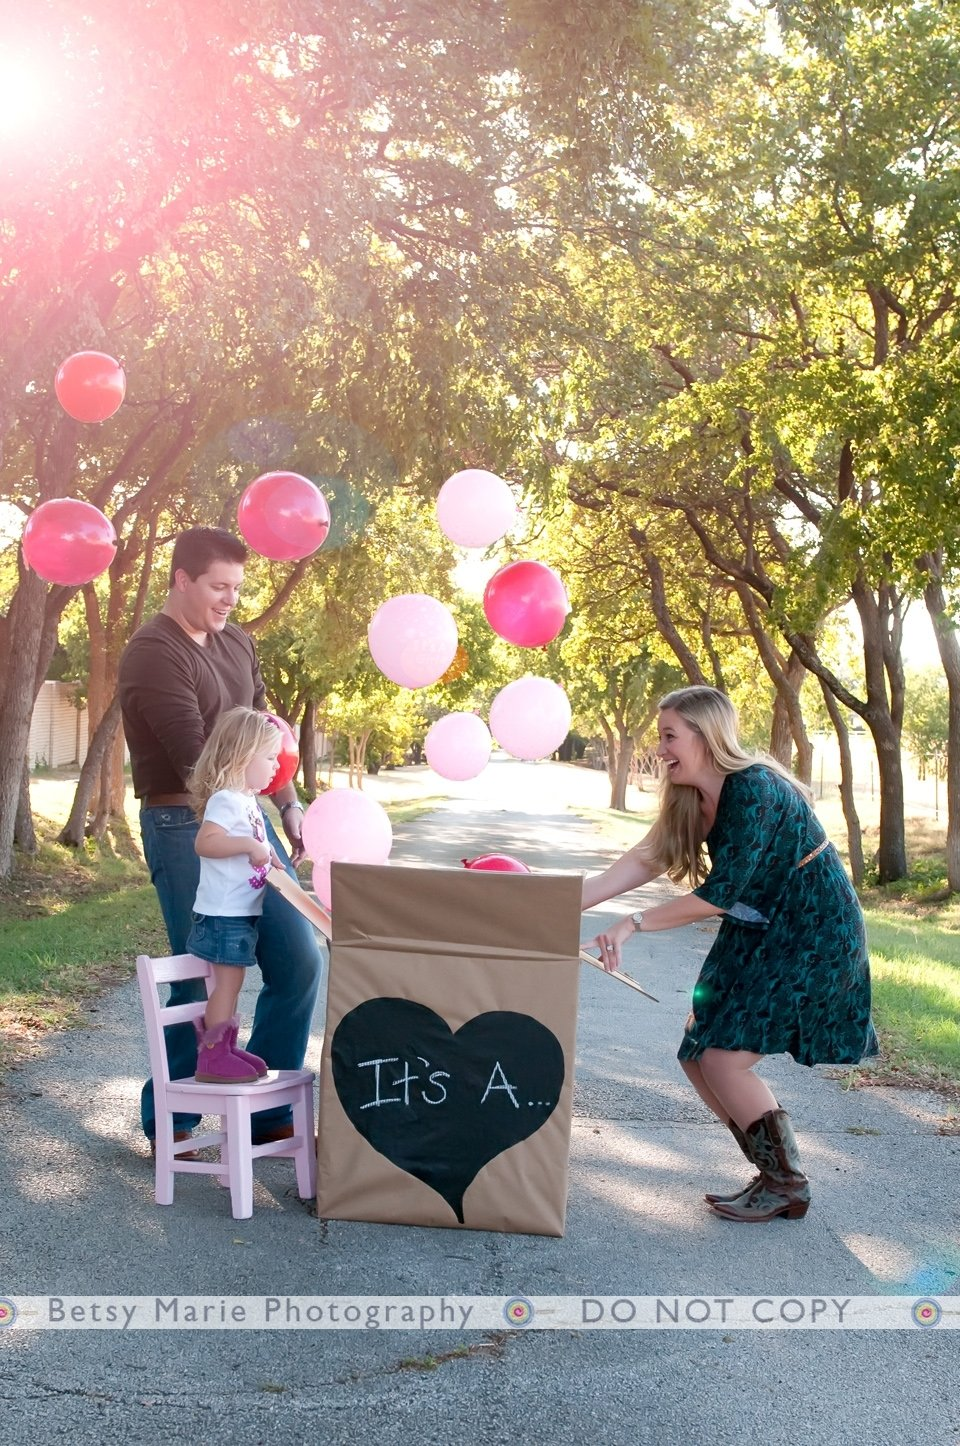 10 Best Boy Or Girl Reveal Ideas pinbetsy marie photography on photography pinterest 1 2021